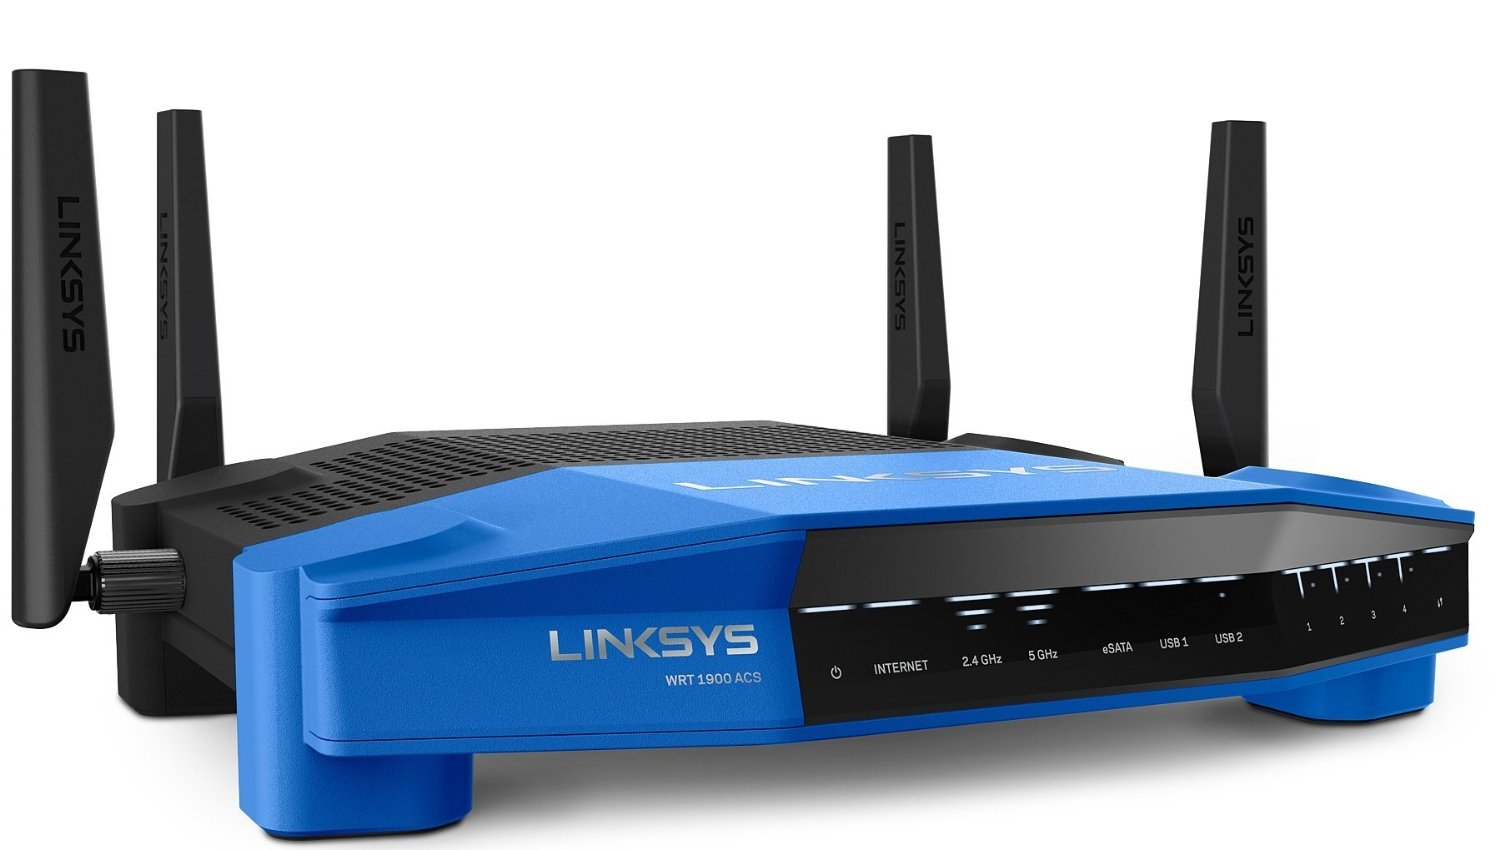 Amazon.com: Linksys AC1900 Dual Band Open Source WiFi Wireless Router ( WRT1900AC) Certified Refurbished: Computers & Accessories